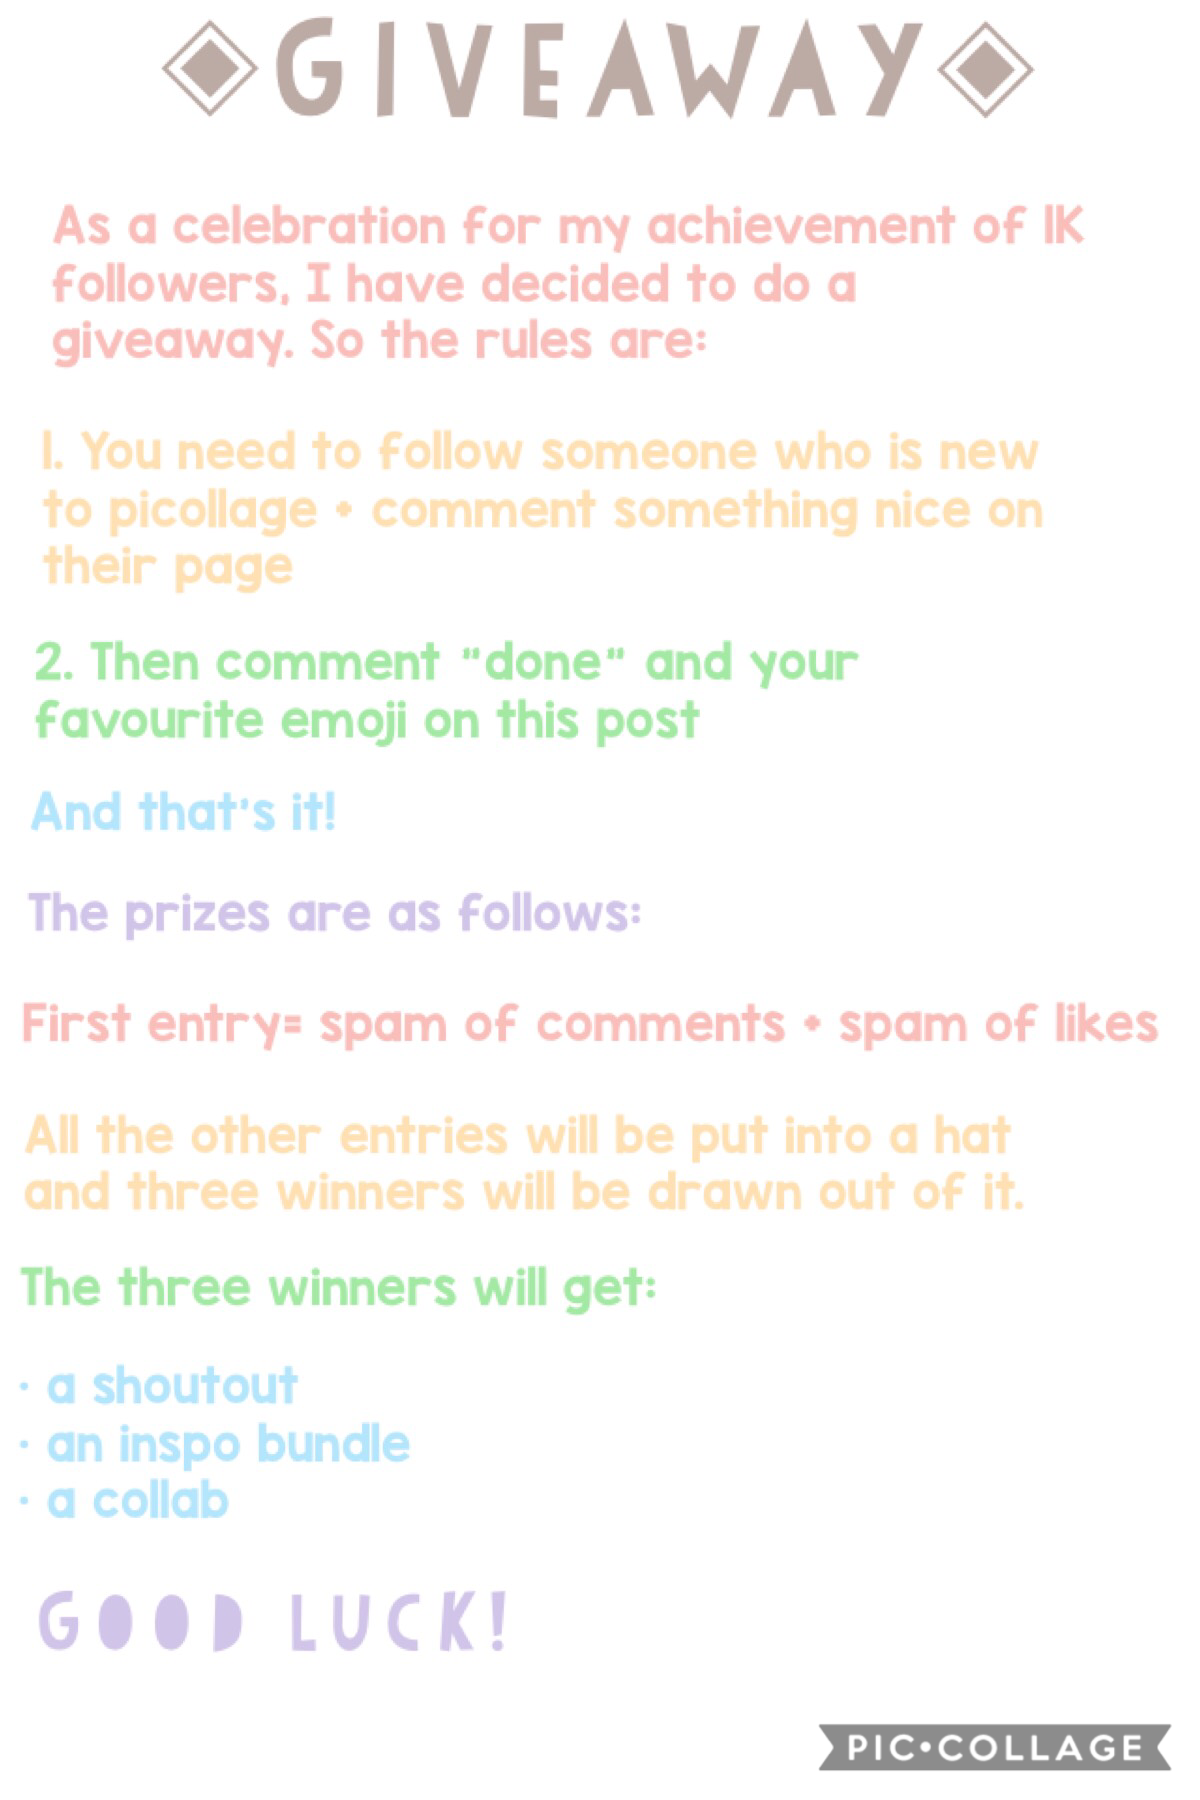 giveaway time 🌸 the due date is next week saturday (23rd of feb) 🦋